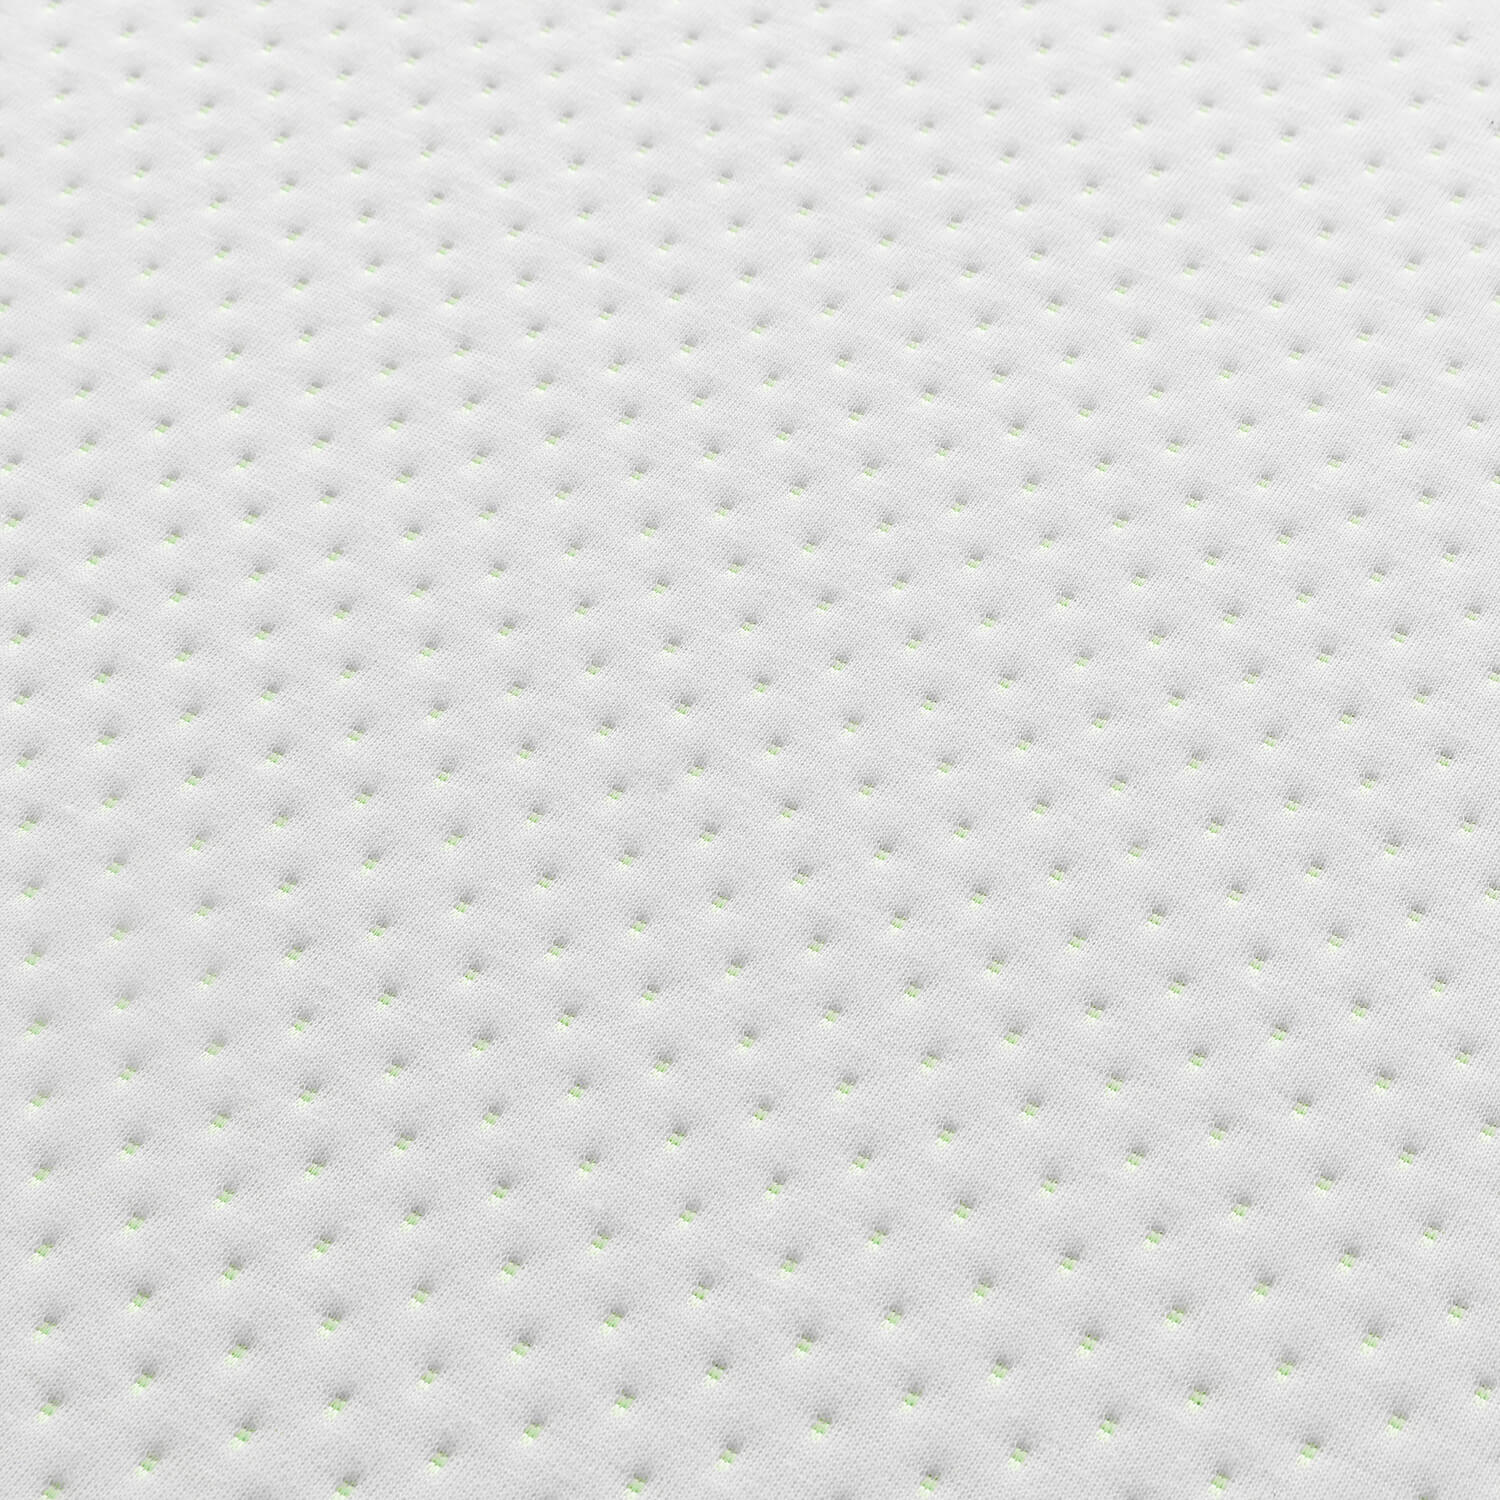 Zinus Green Tea Mattress Gill 3 Sizes 3 5 Ft 5 Ft 6